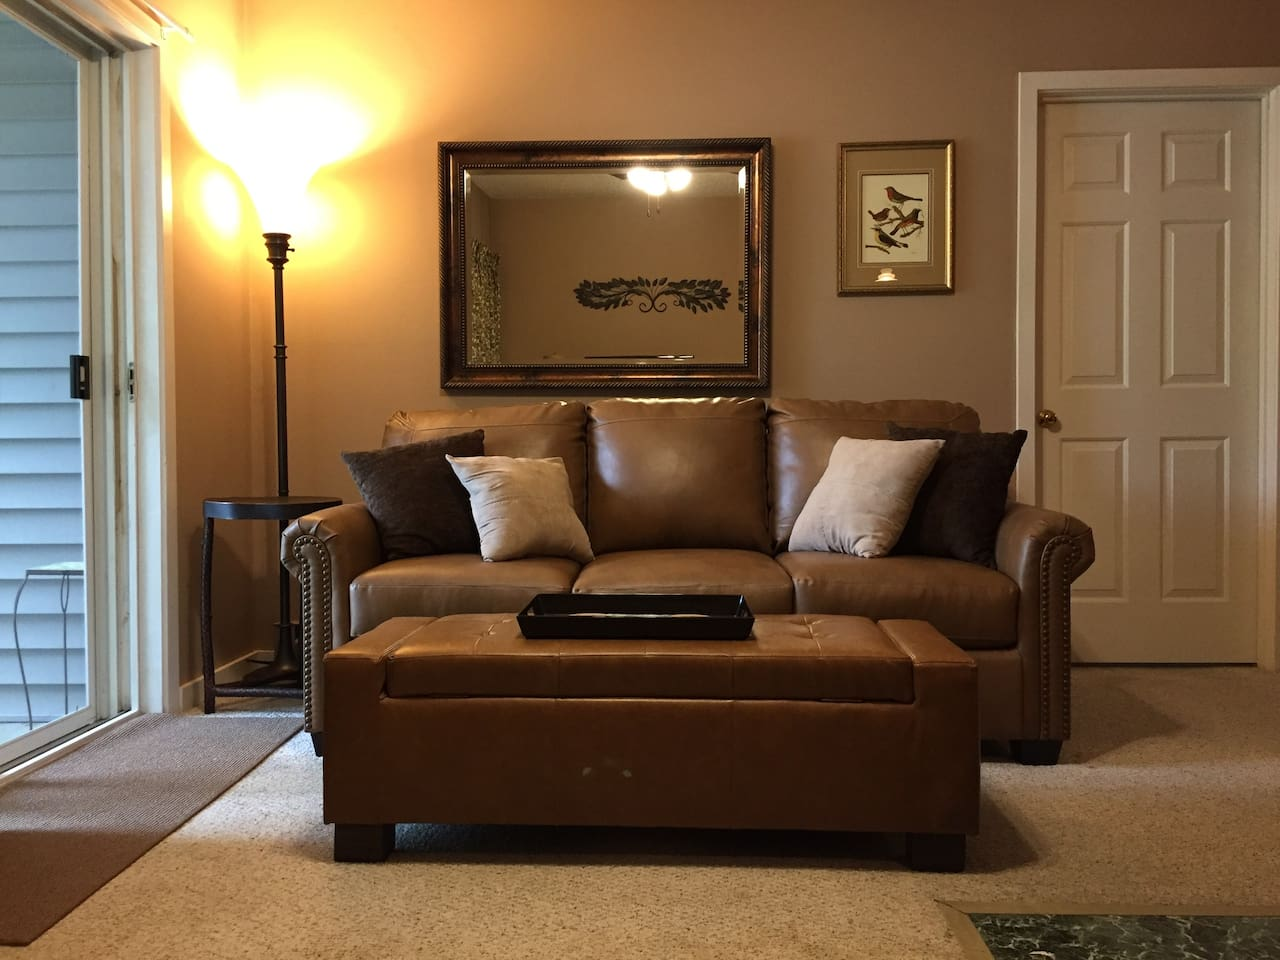 Warm, inviting living room with leather sleeper sofa (queen memory foam mattress). Door to master bedroom seen to right of couch.